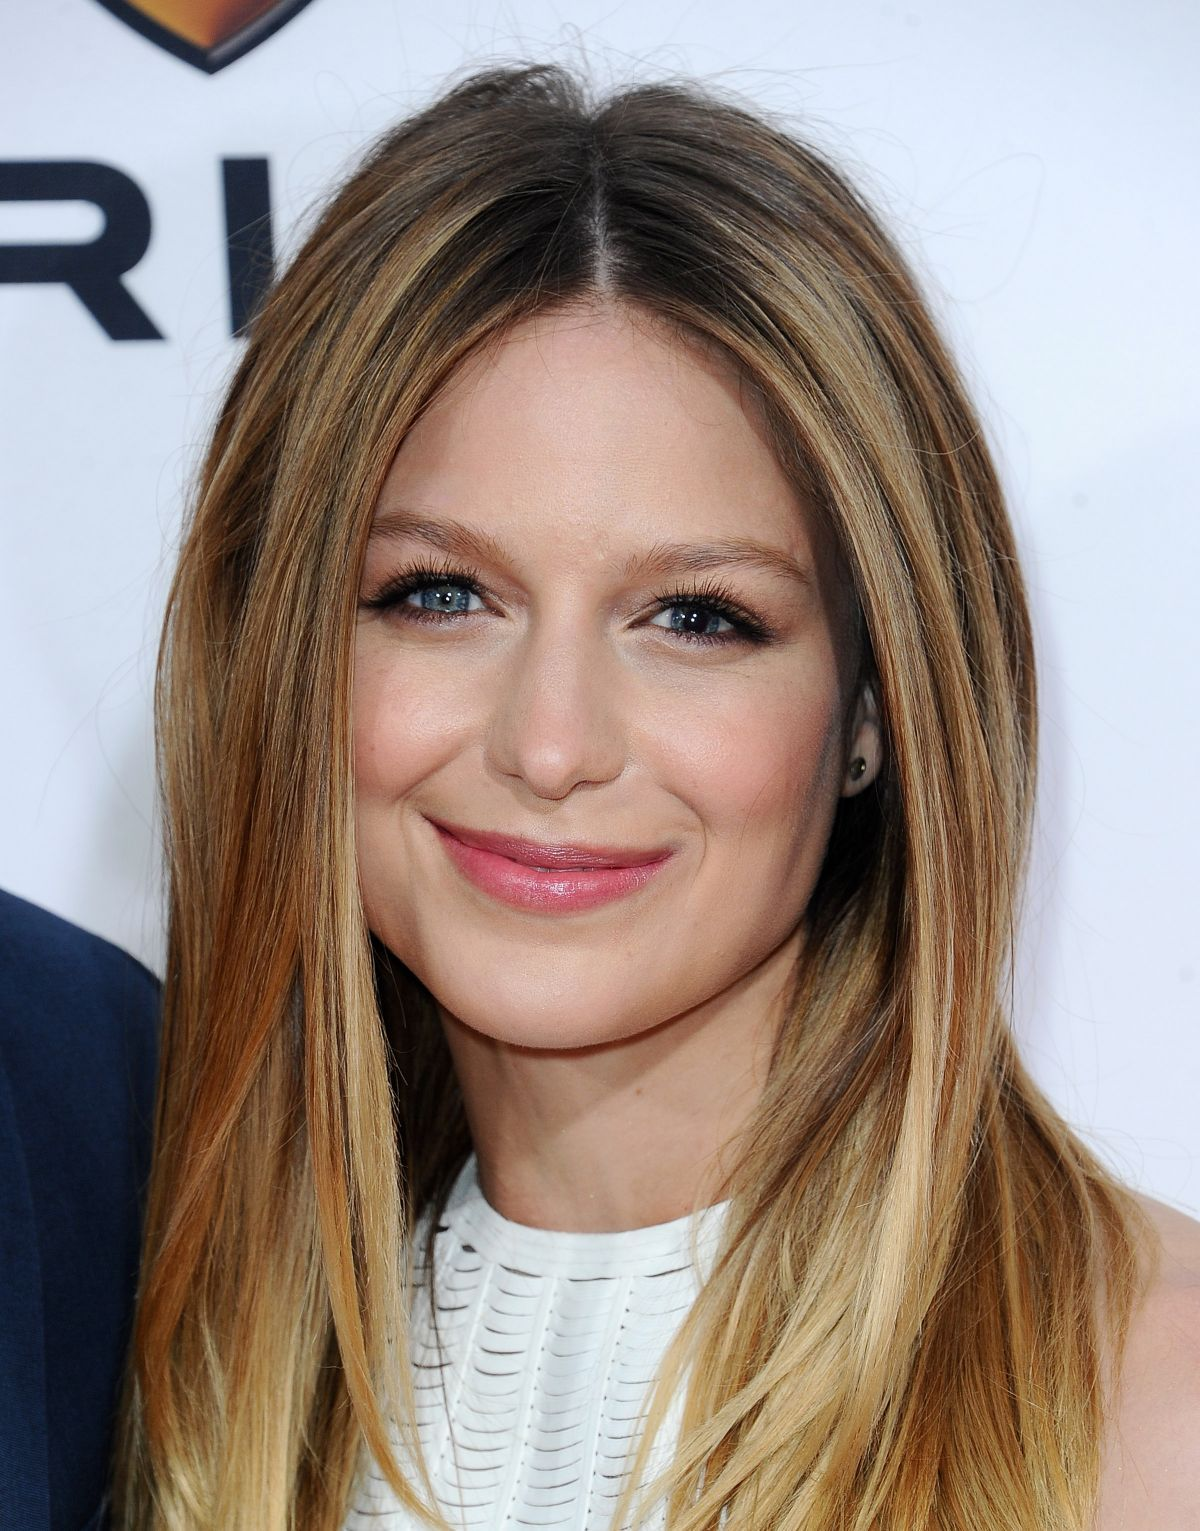 Melissa Benoist Attends The Longest Ride Premiere In Hollywood 1 Jpg 1200 1531 メリッサ ブノワ ブノワ